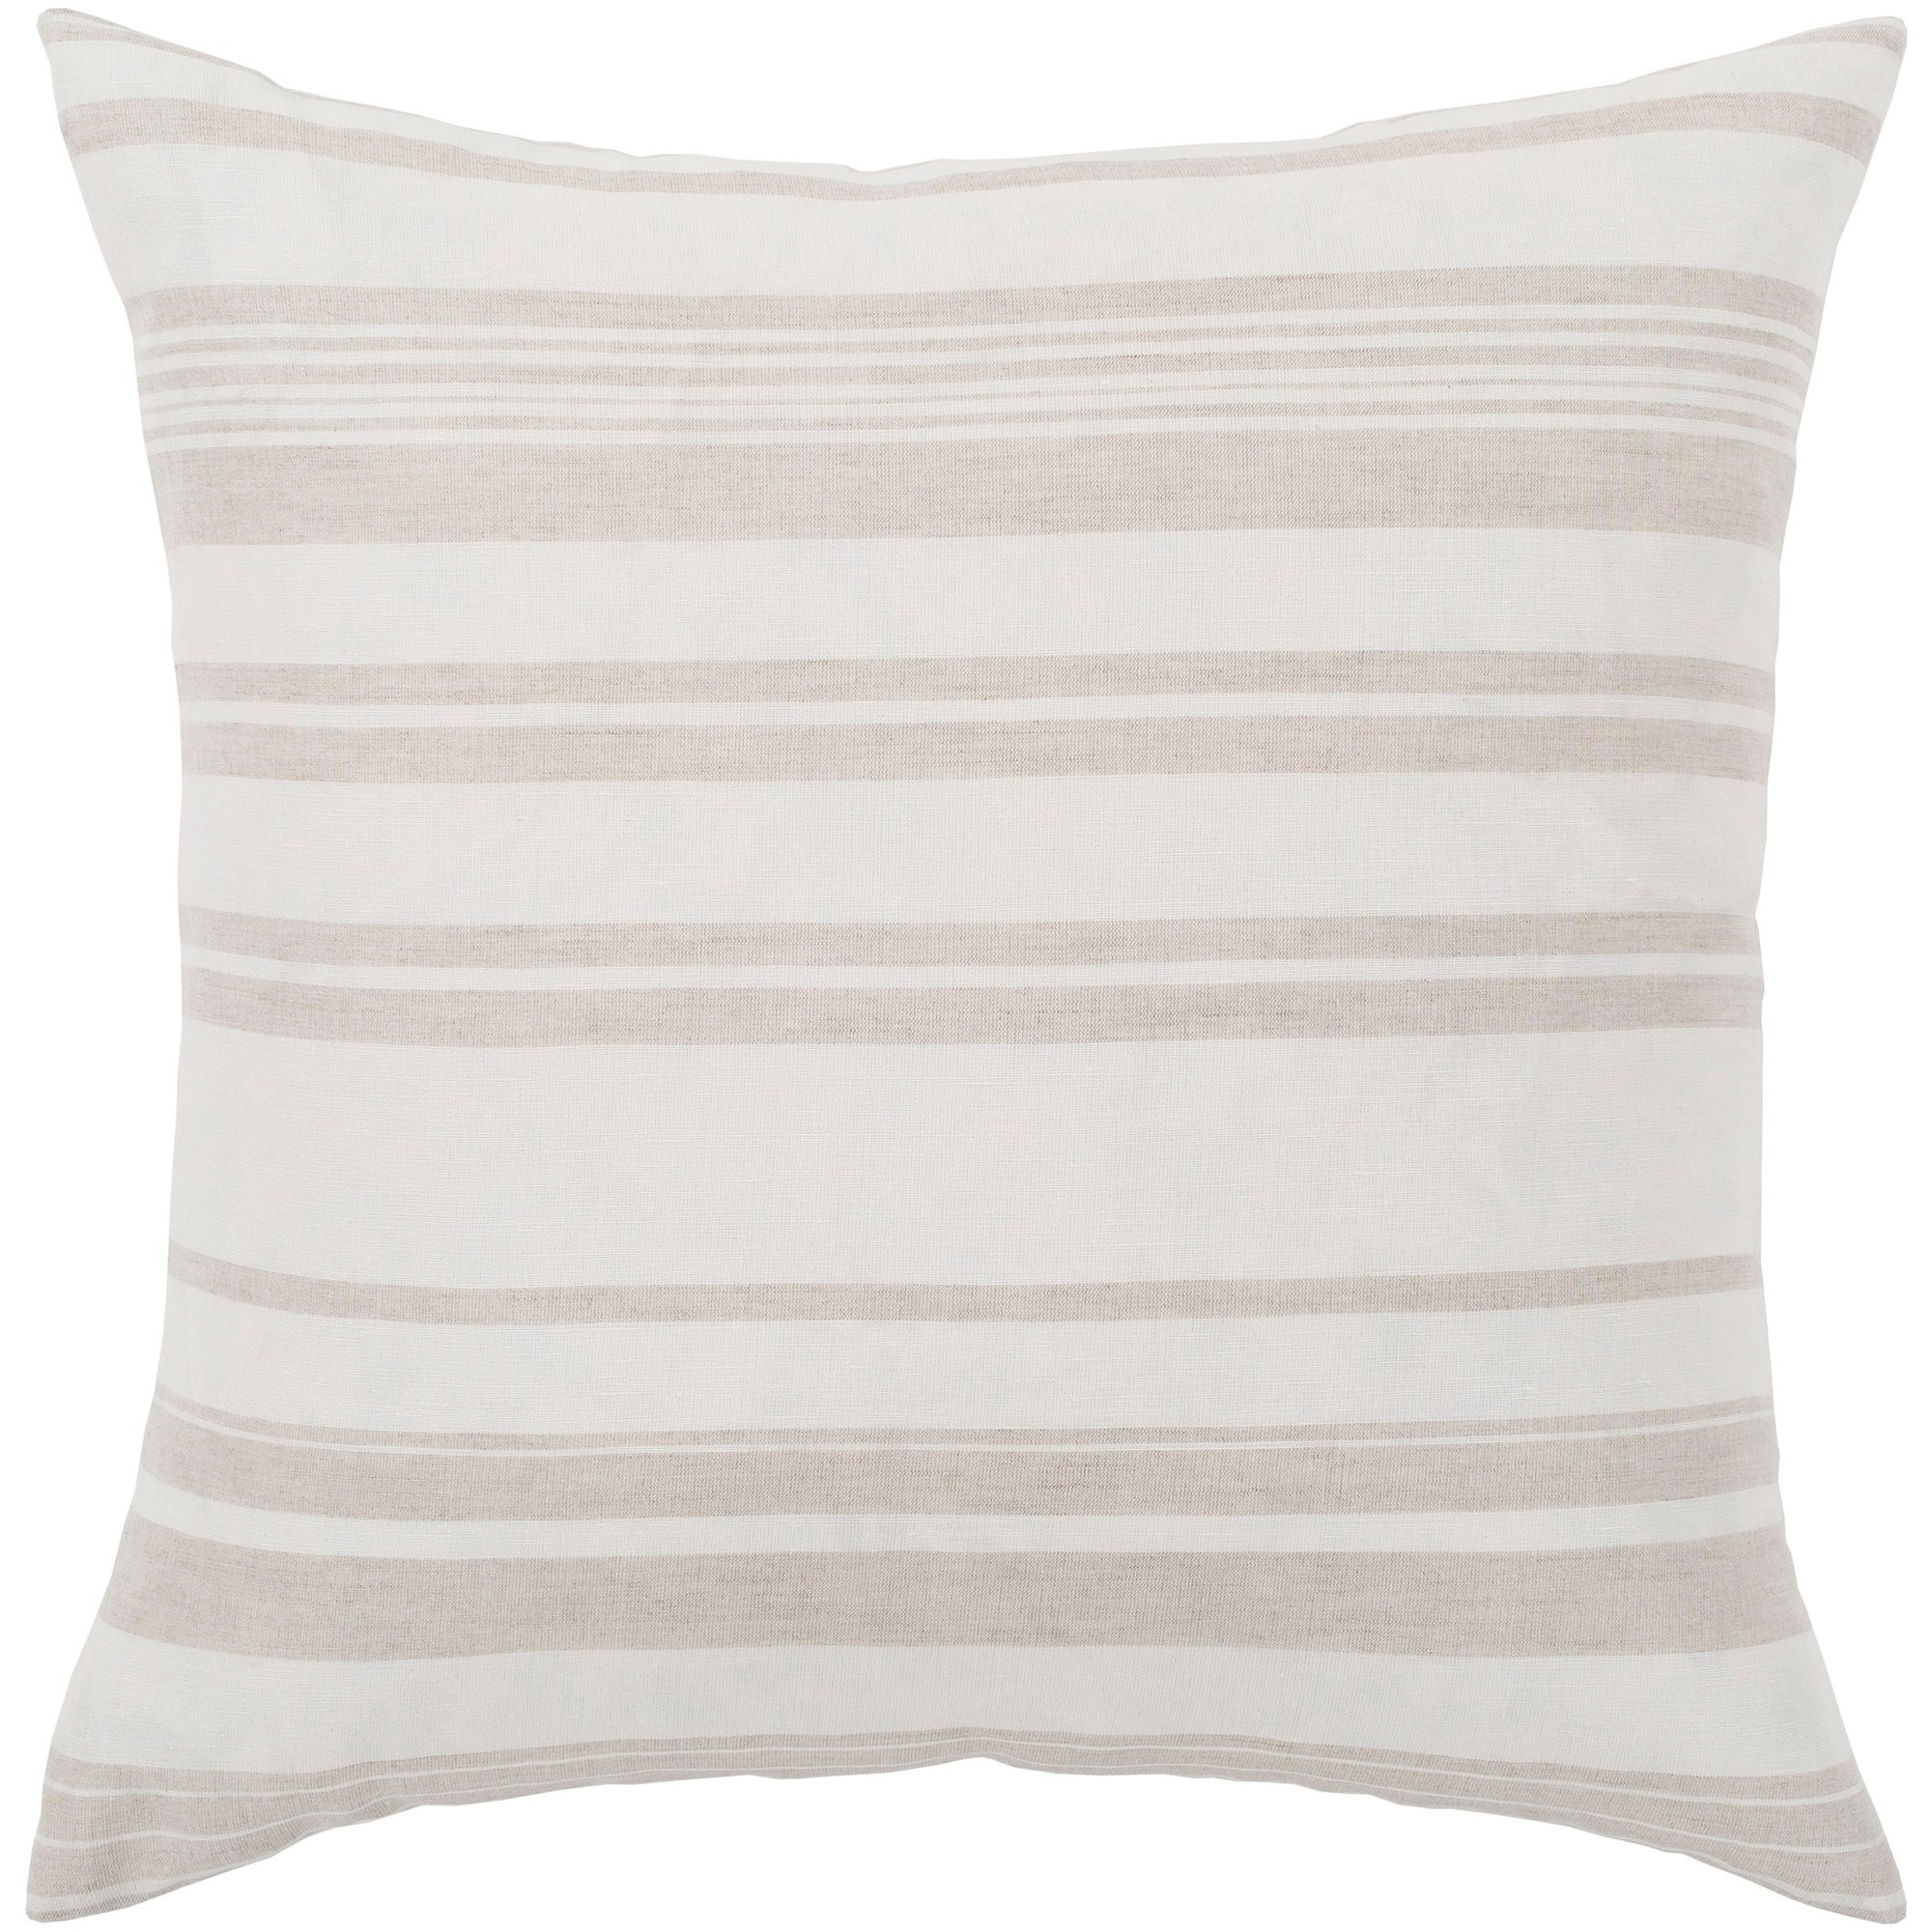 Astonishing Lawson Ivory Beige Striped Throw Pillow Cover 18 X 18 Gmtry Best Dining Table And Chair Ideas Images Gmtryco